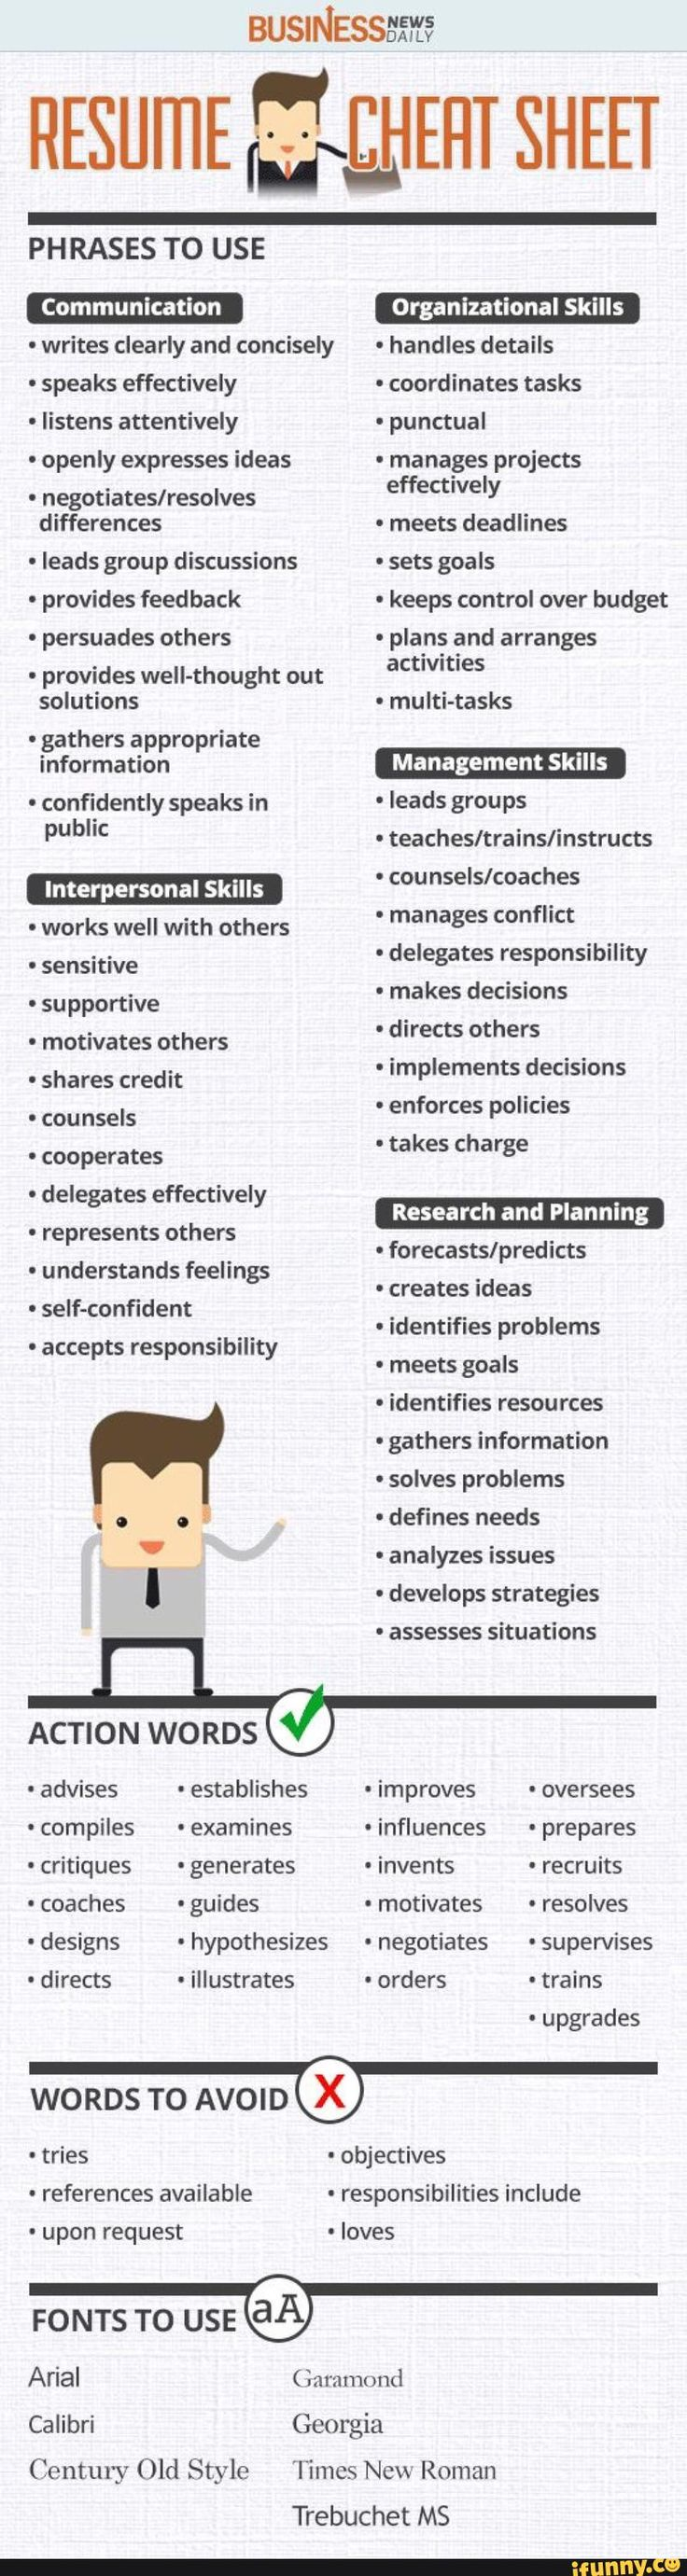 resume cheat sheet more